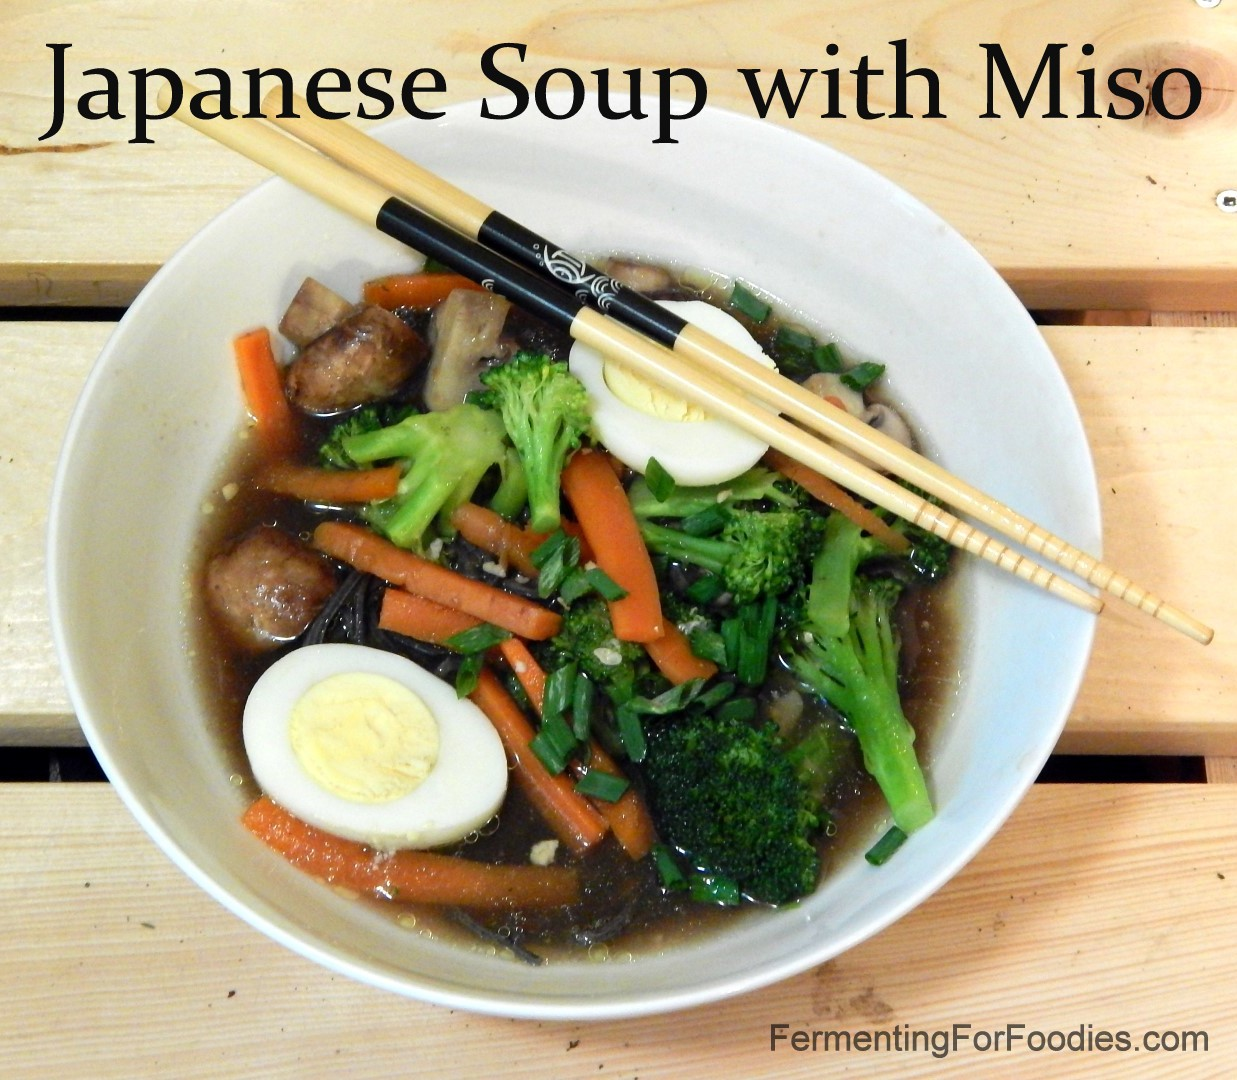 Japanese noodle bowl with miso, eggs and vegetables.